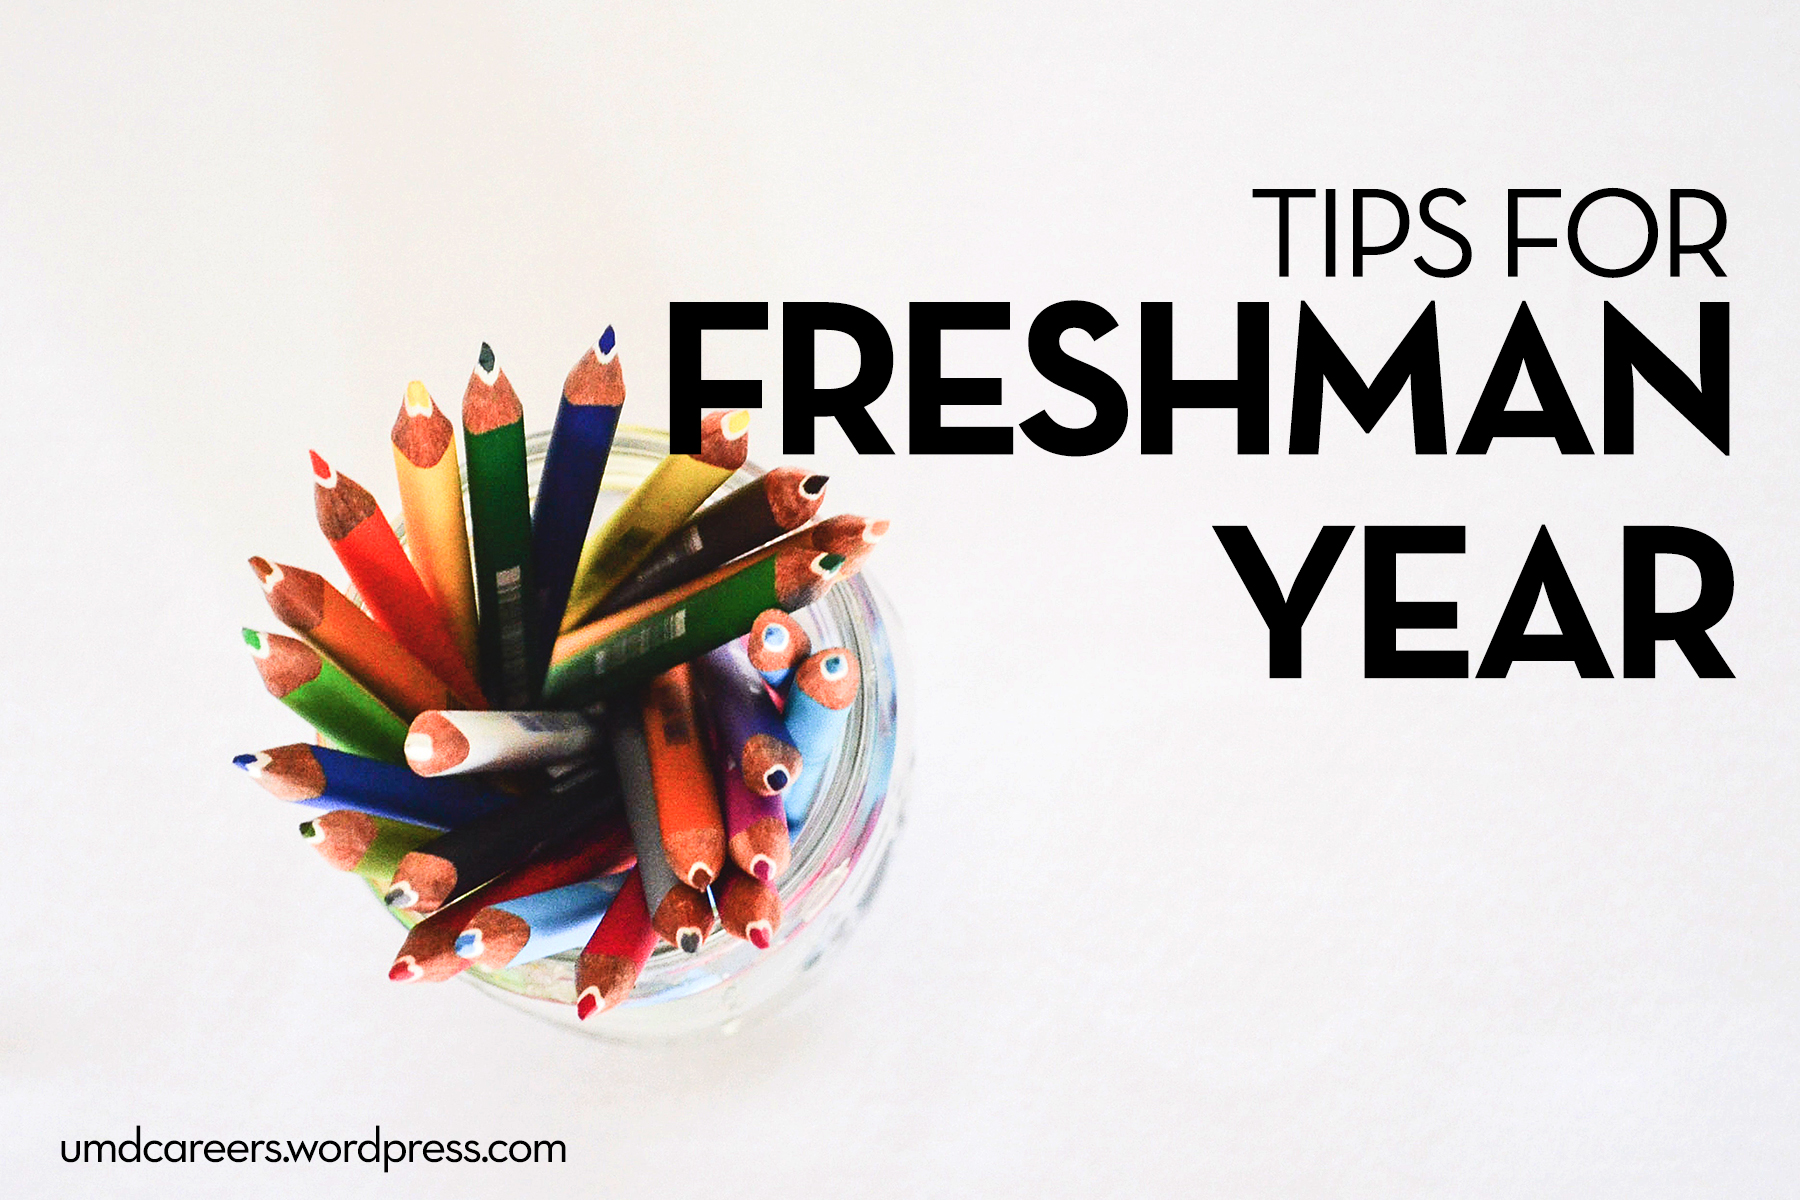 Image: Looking down on a glass jar of colored pencils on a white background. Text: Tips for Freshman Year